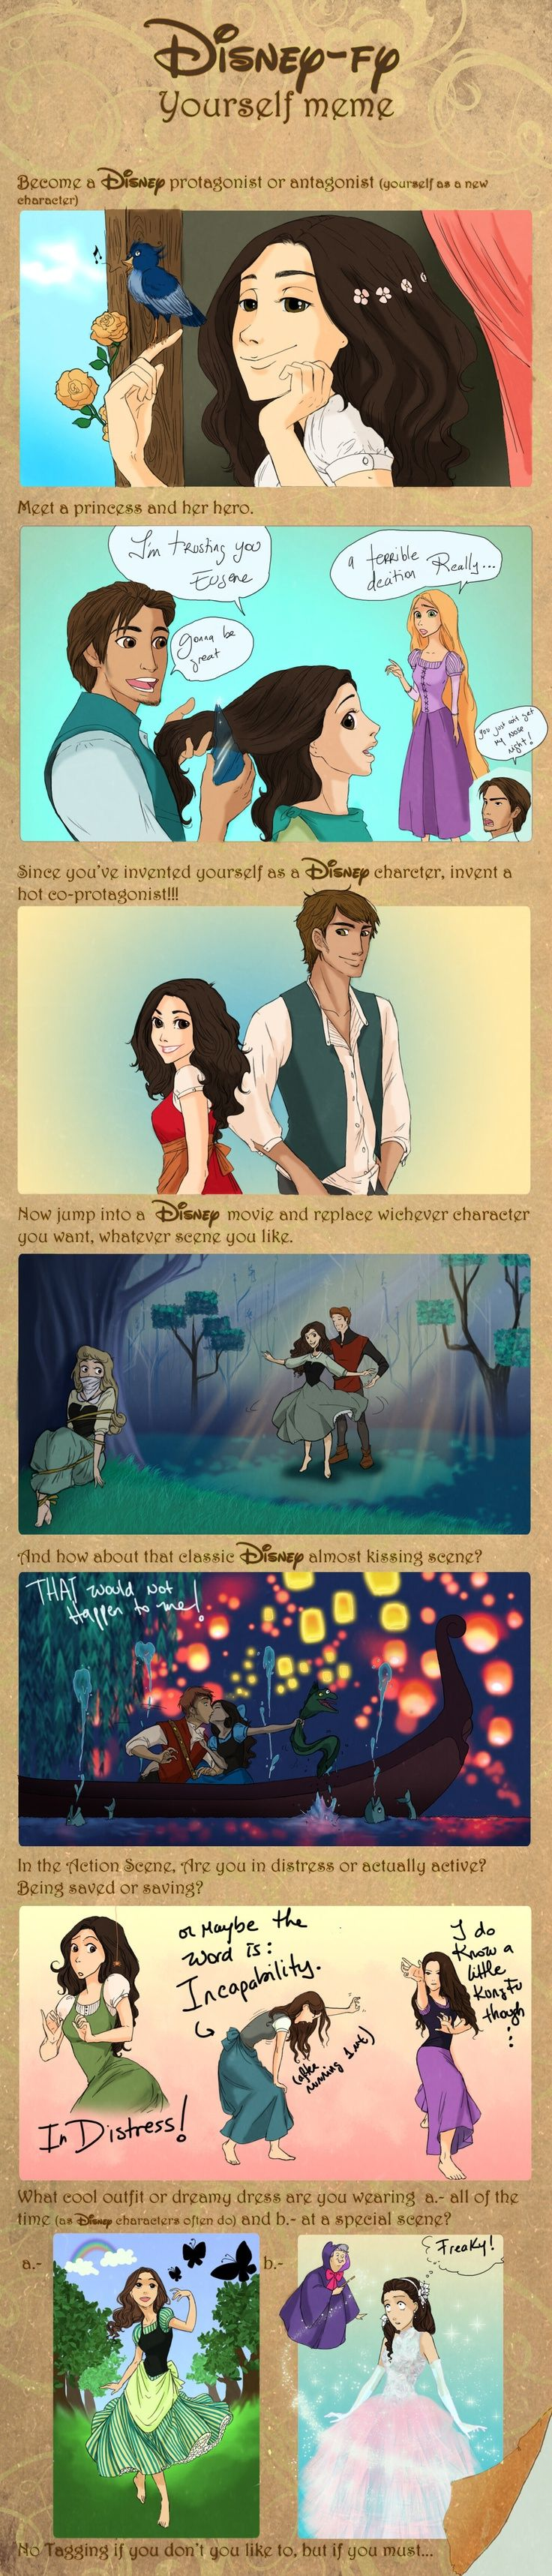 Disney-fy yourself, hahaha Im so gonna do this or team up with someone